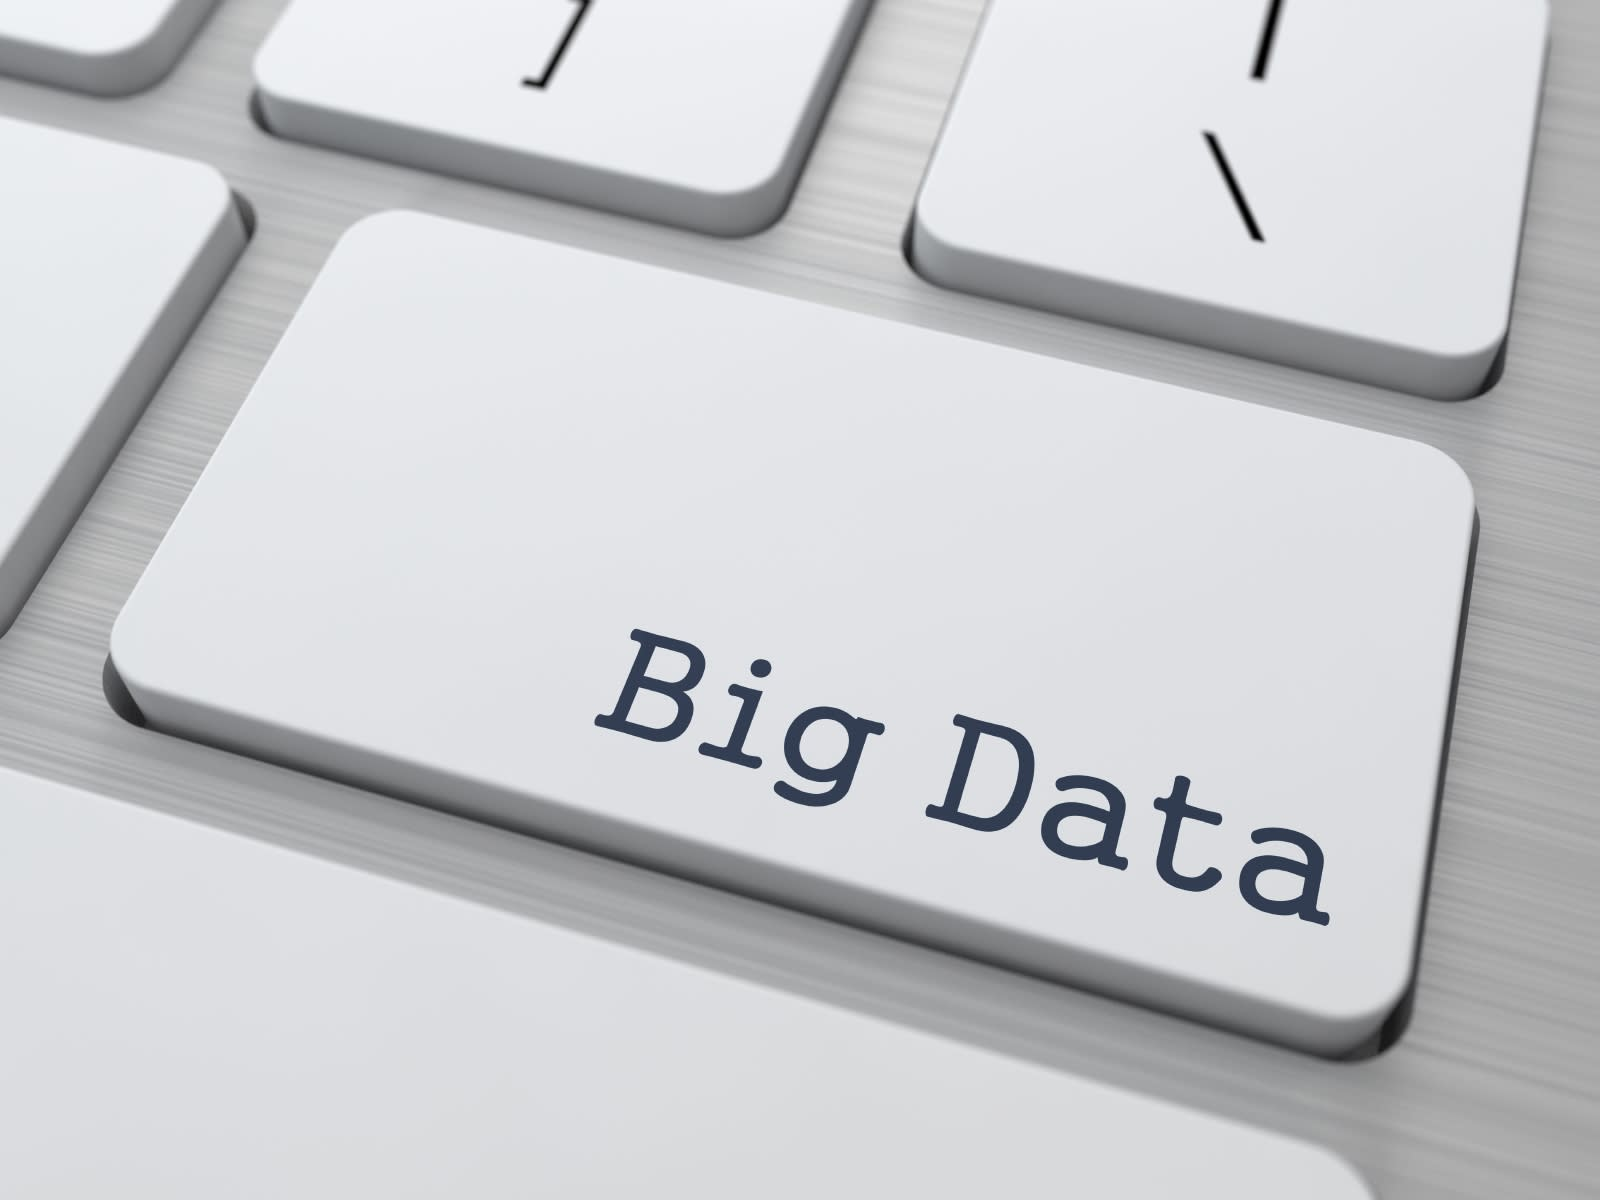 Research shows companies recognize the power of combining big data and IoT